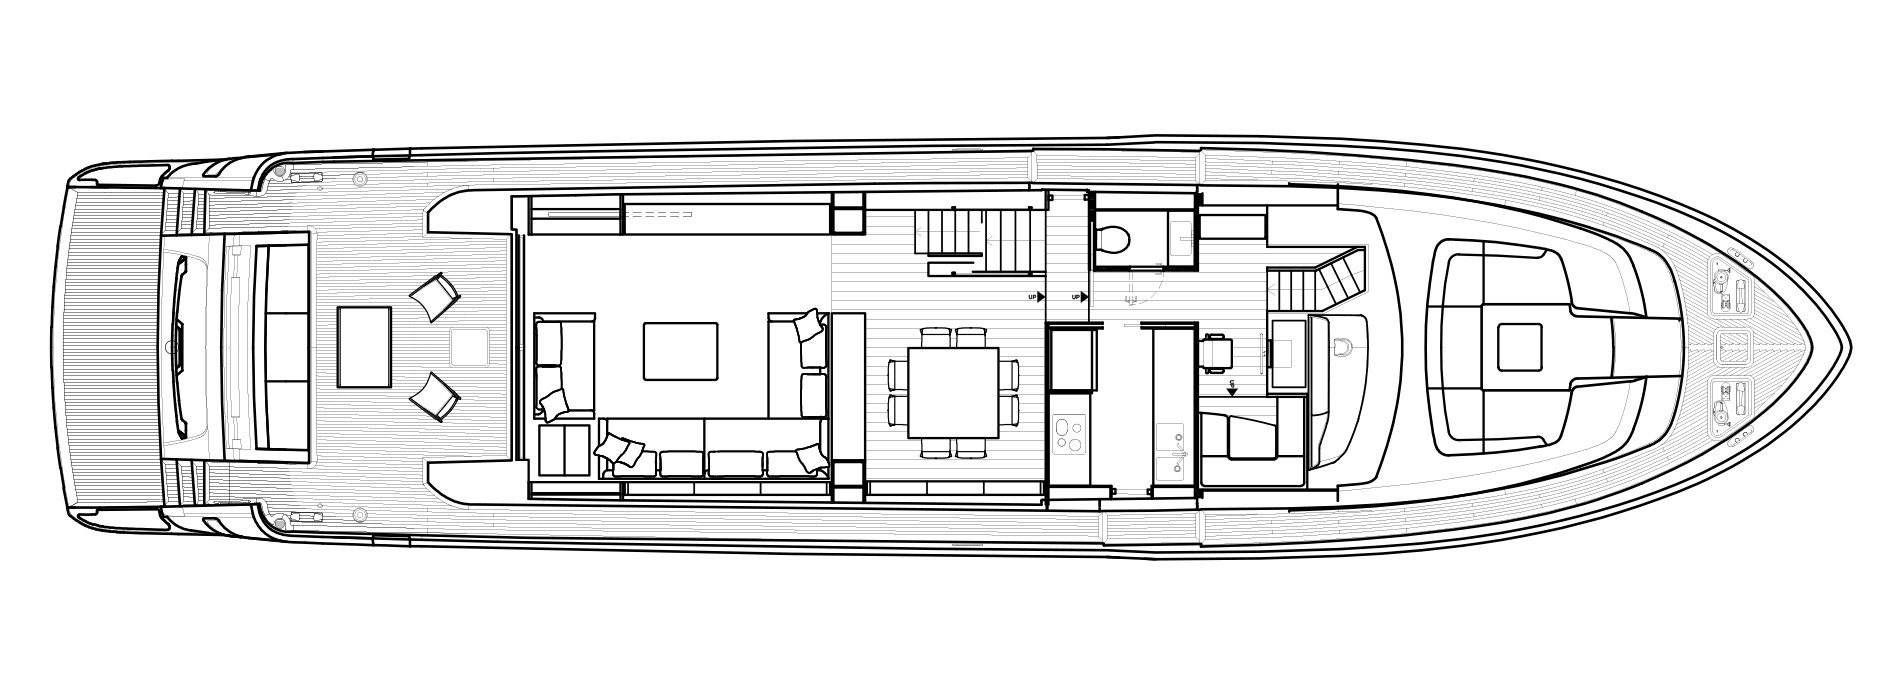 Sanlorenzo Yachts SL86 Main Deck Version A